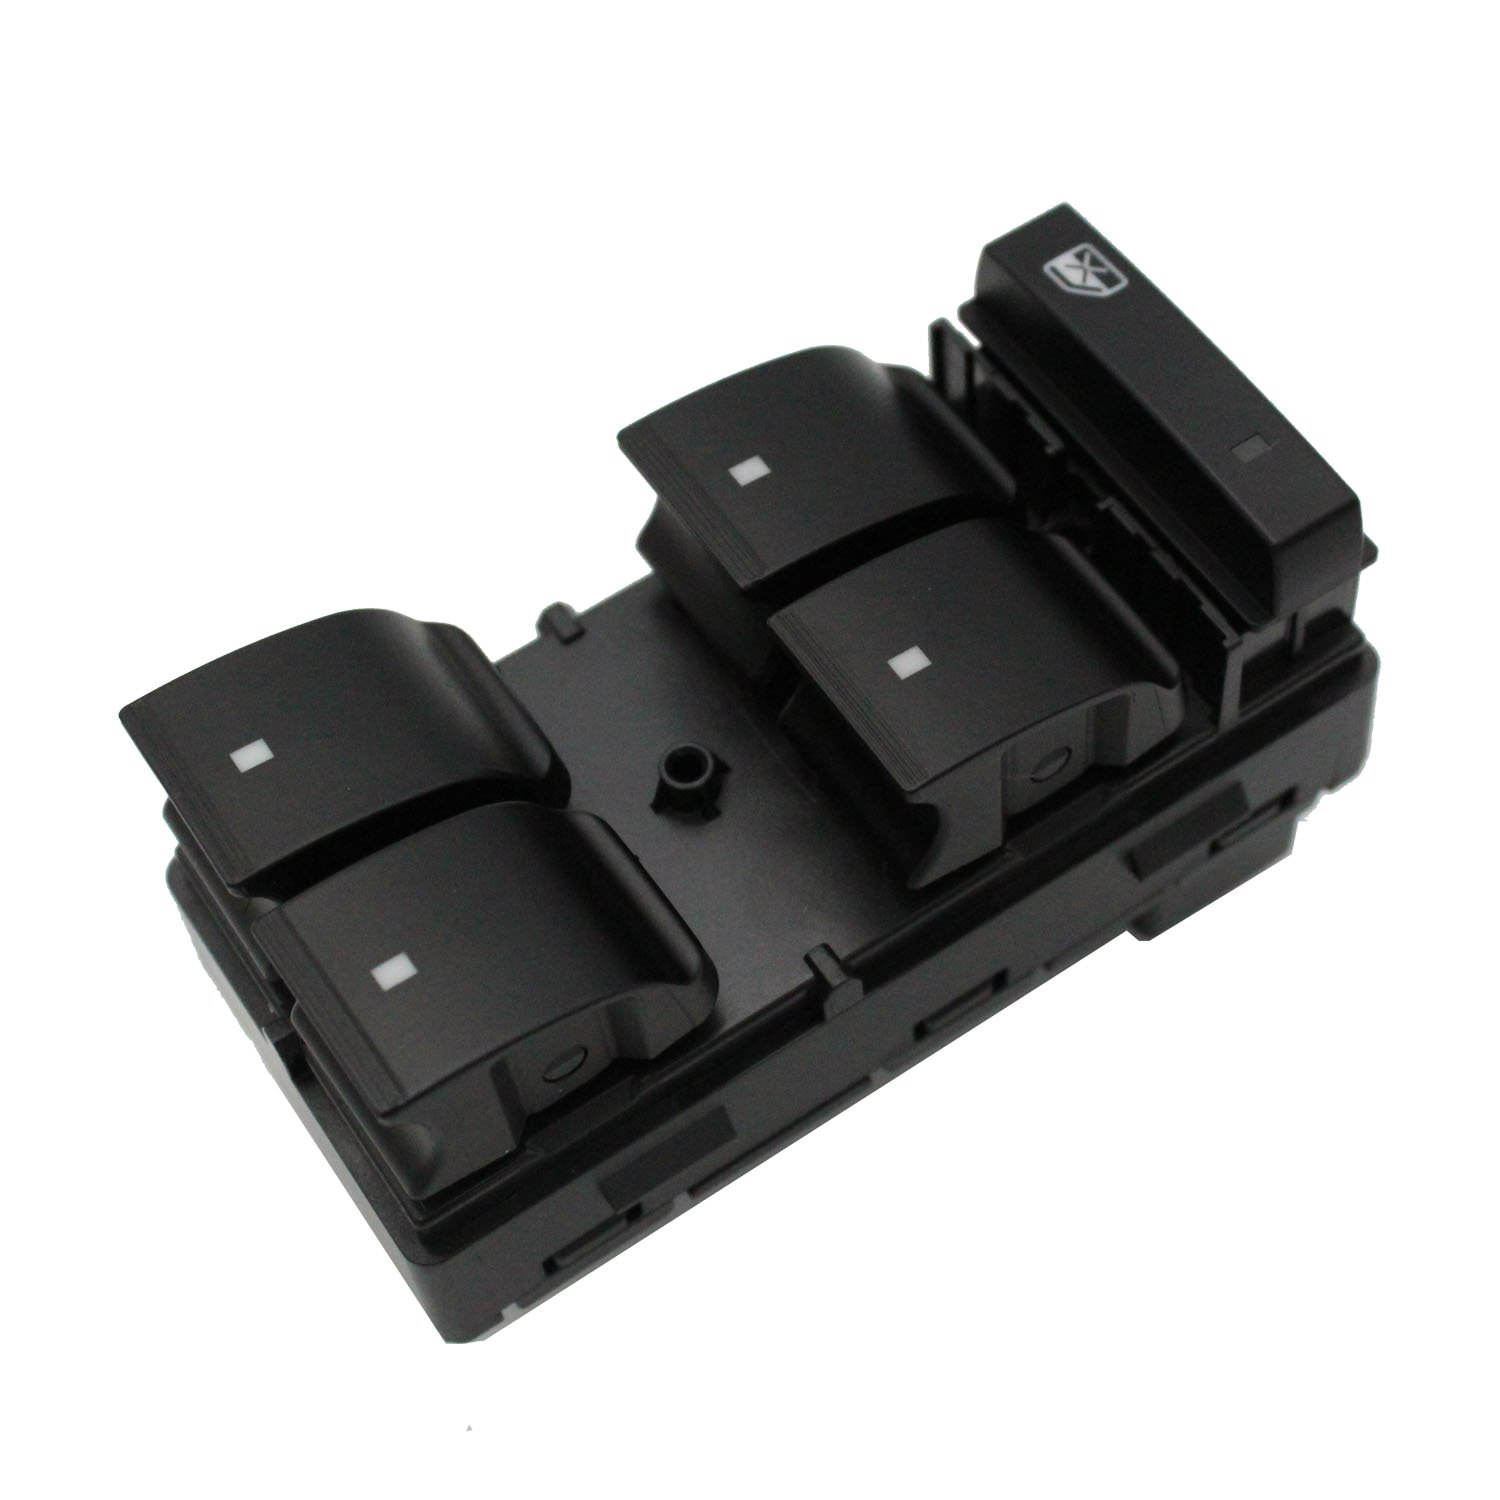 EVER STORE Driver Side Power Window Master 4 Door Control Switch 25789692 20945129 25951963 Compatible for Chevy Silverado GMC Sierra Yukon Traverse Buick Enclave